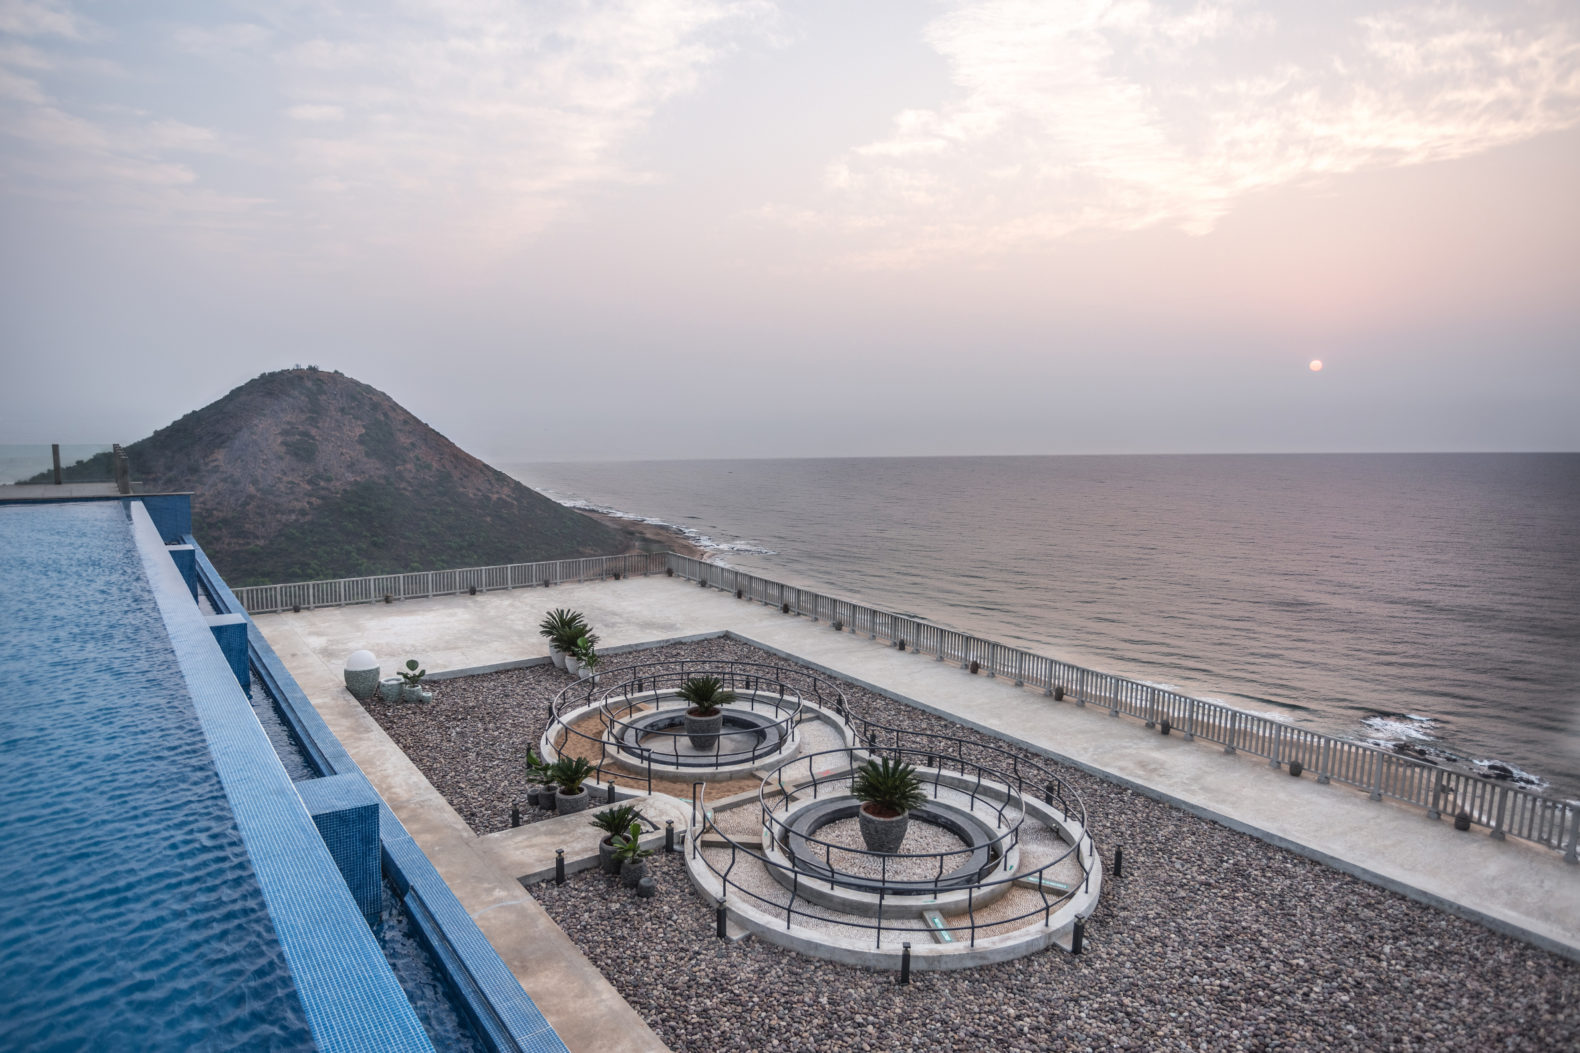 garden-view-natural-stones-infinity-pool-ocean-waves-moonshine-pema-health-healing-resort-india-hotel